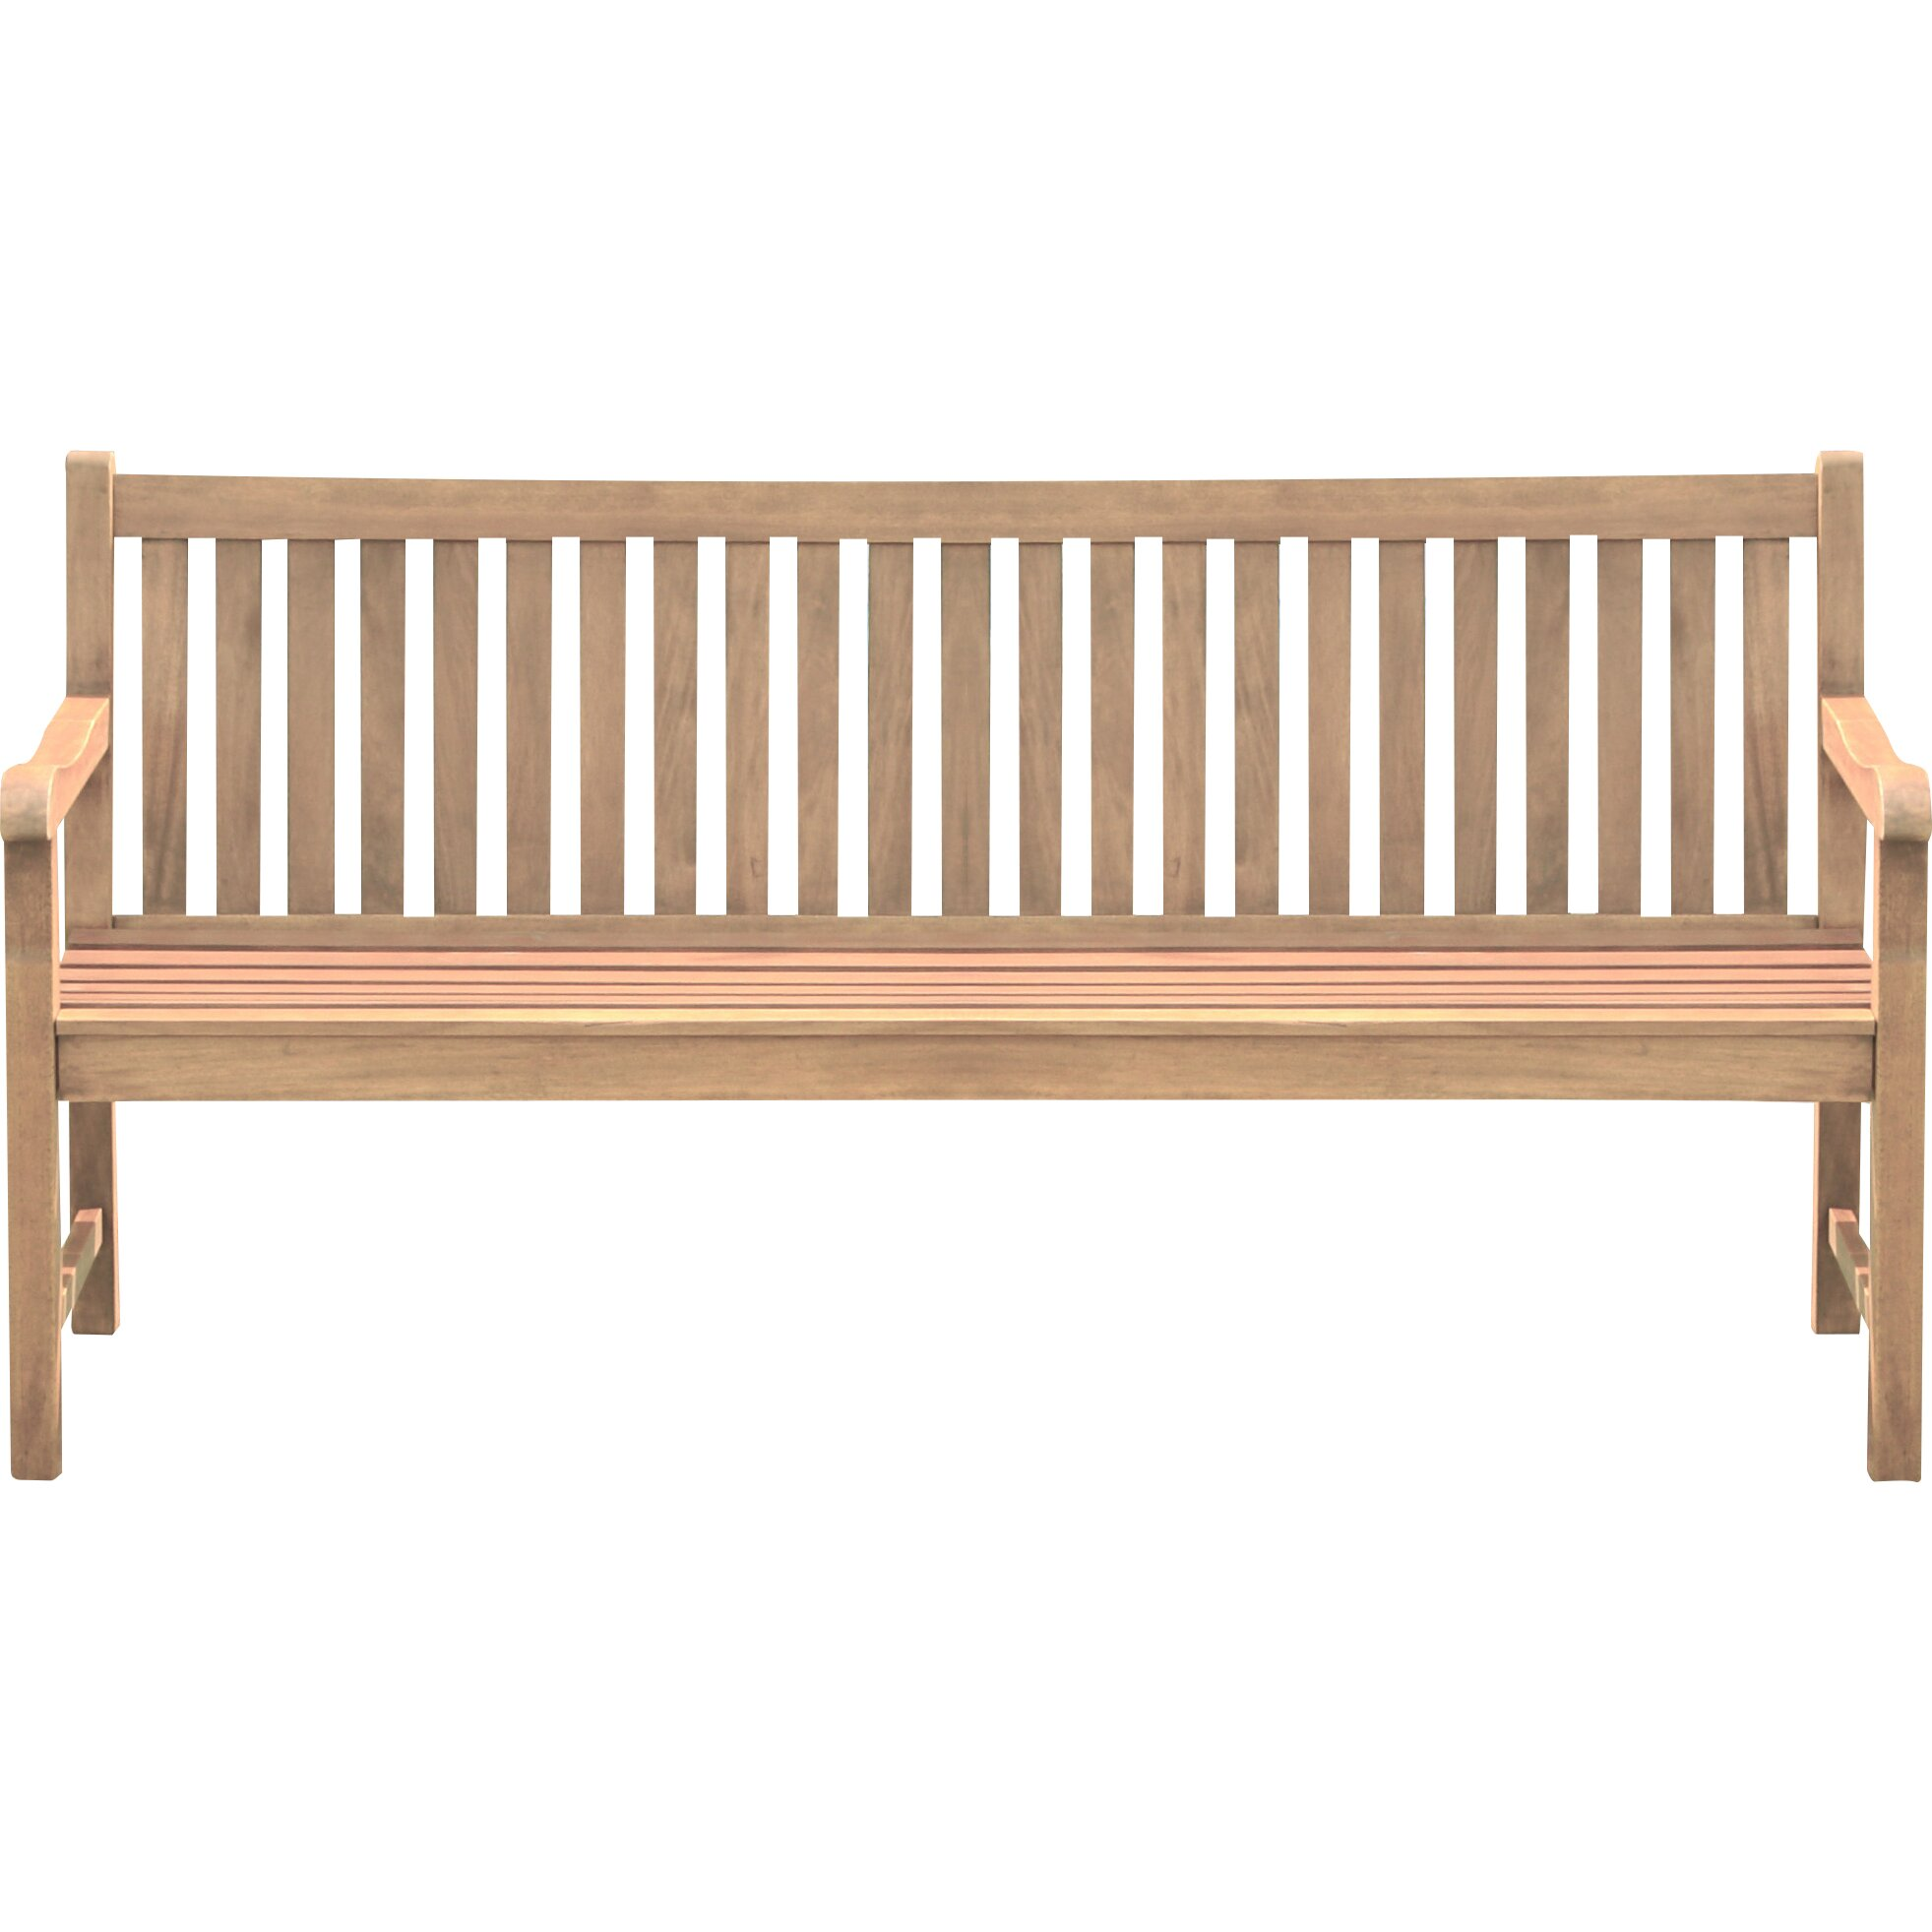 Home Etc Muireann 3 Seater White Balau Wooden Bench Reviews Wayfair Uk